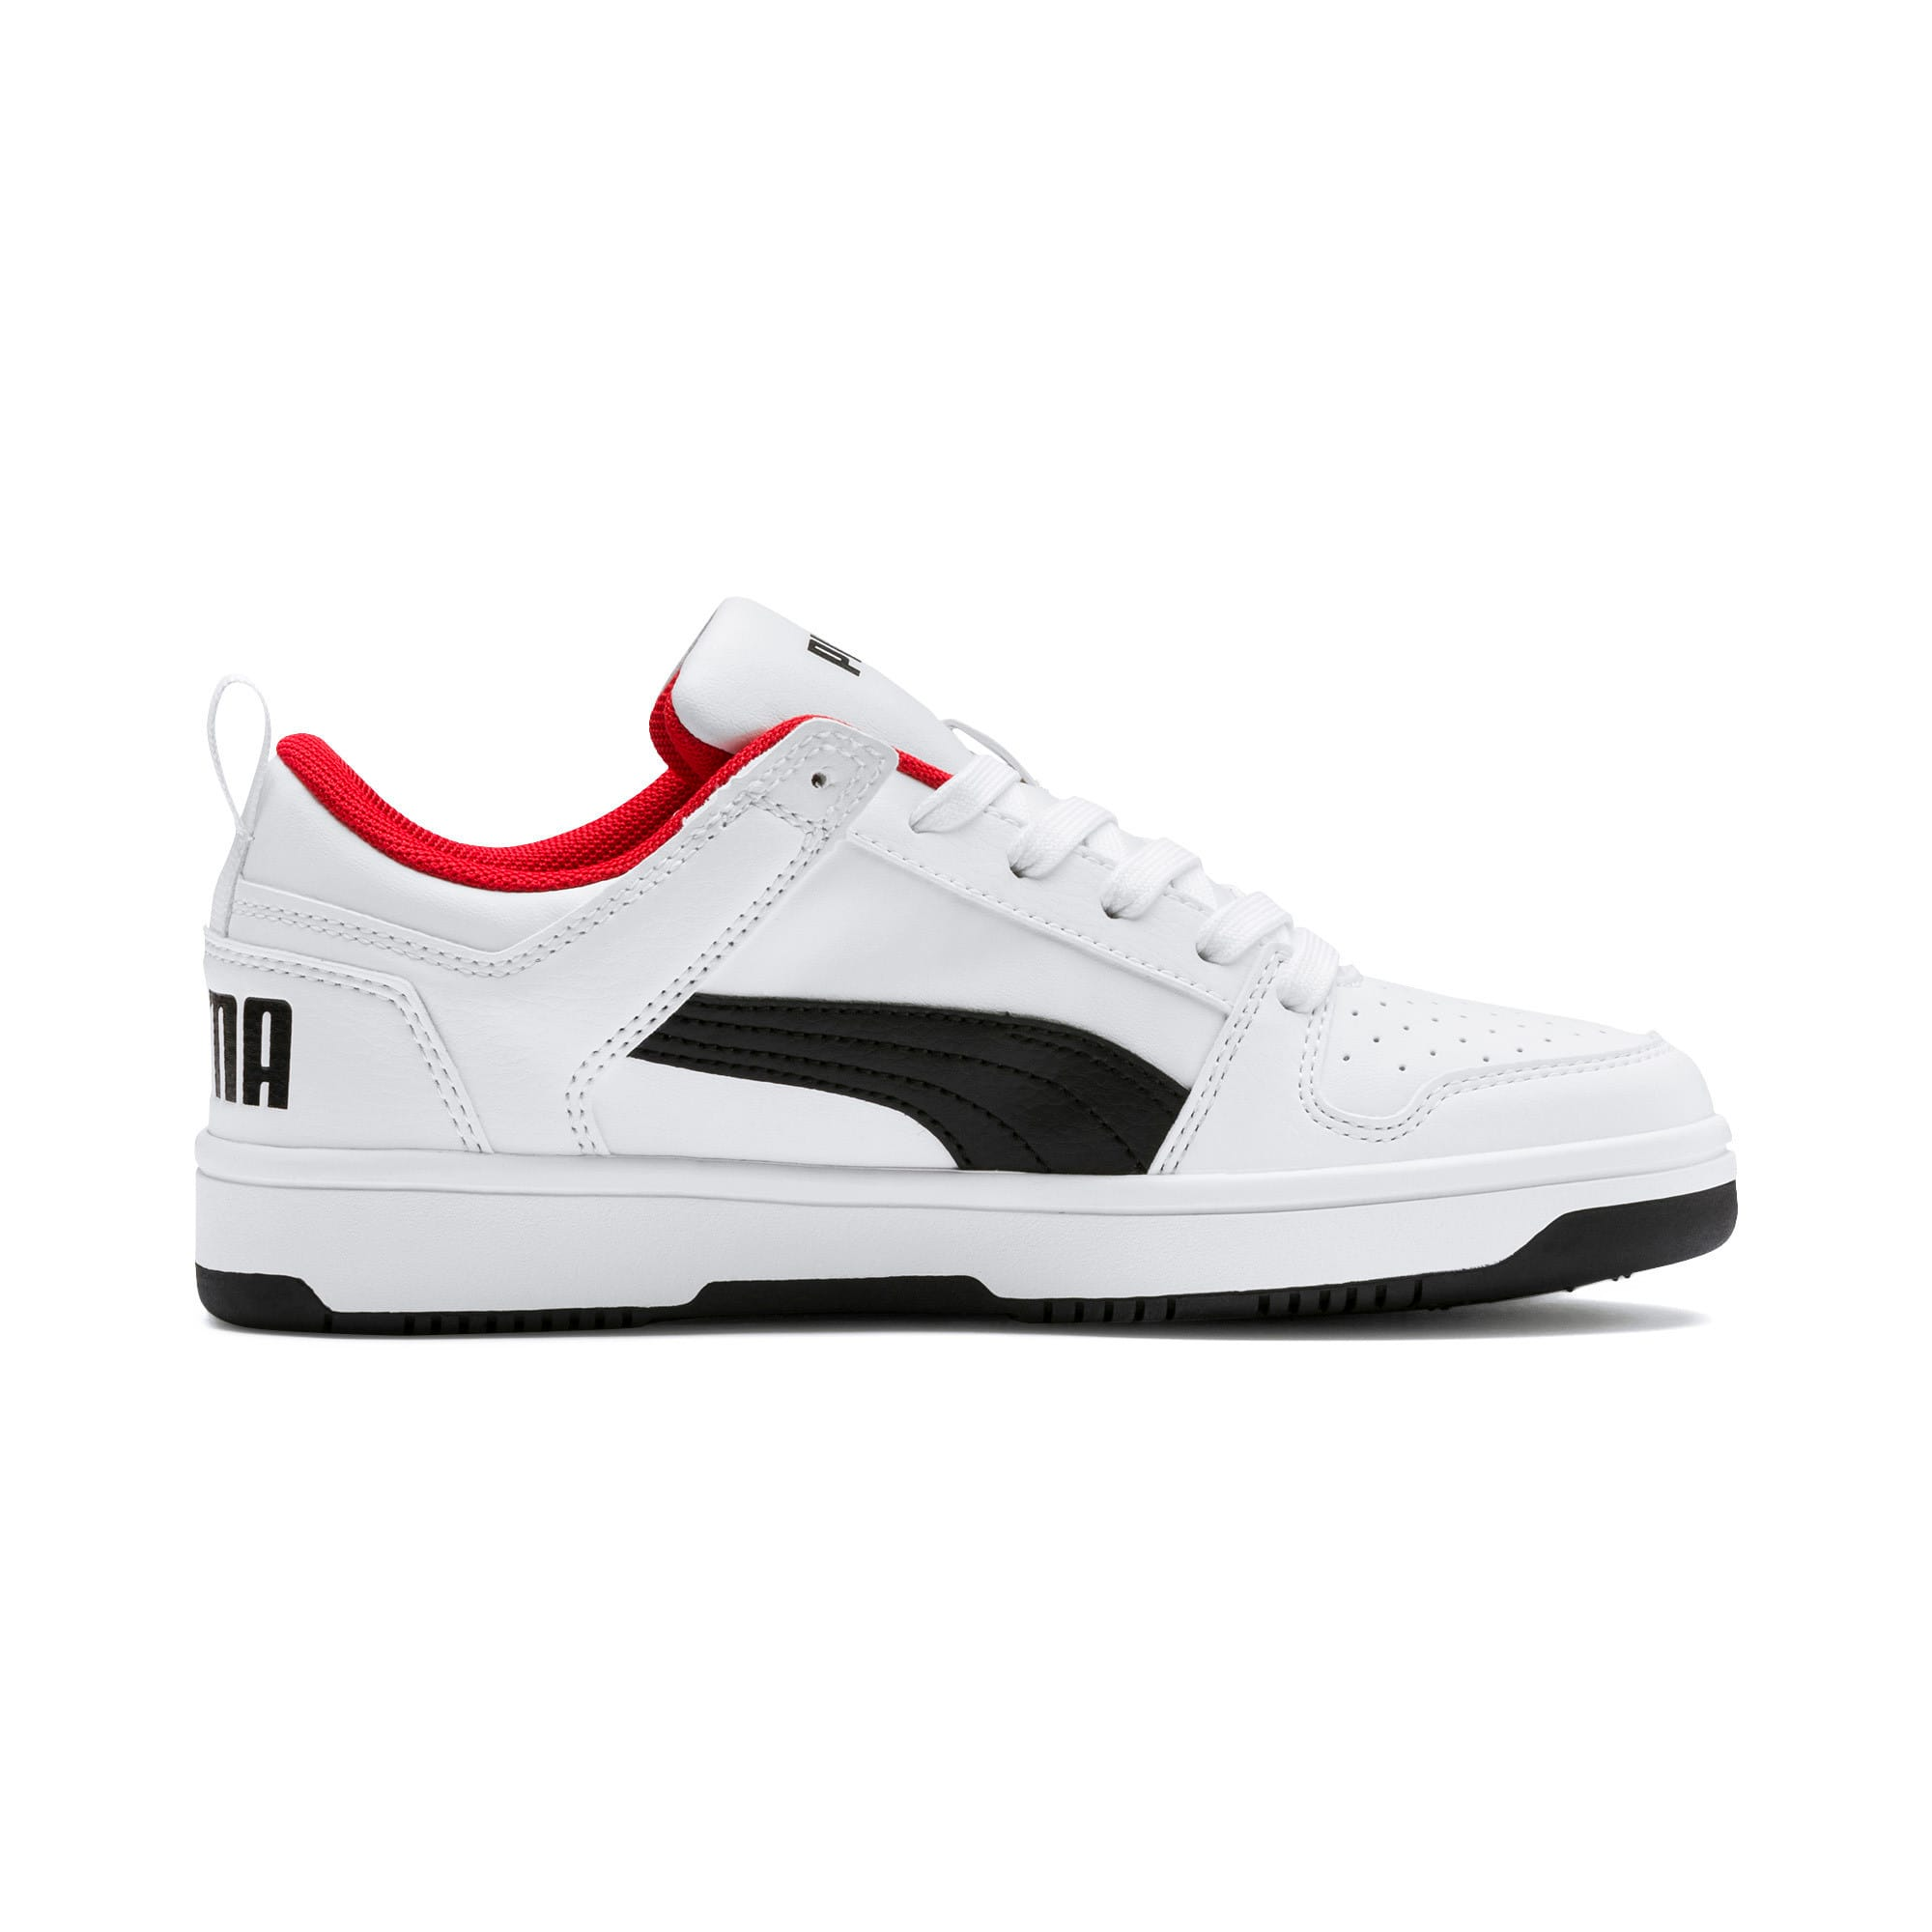 Thumbnail 5 of Rebound Lay-Up Lo Youth Trainers, Puma White-Puma Black-Red, medium-IND